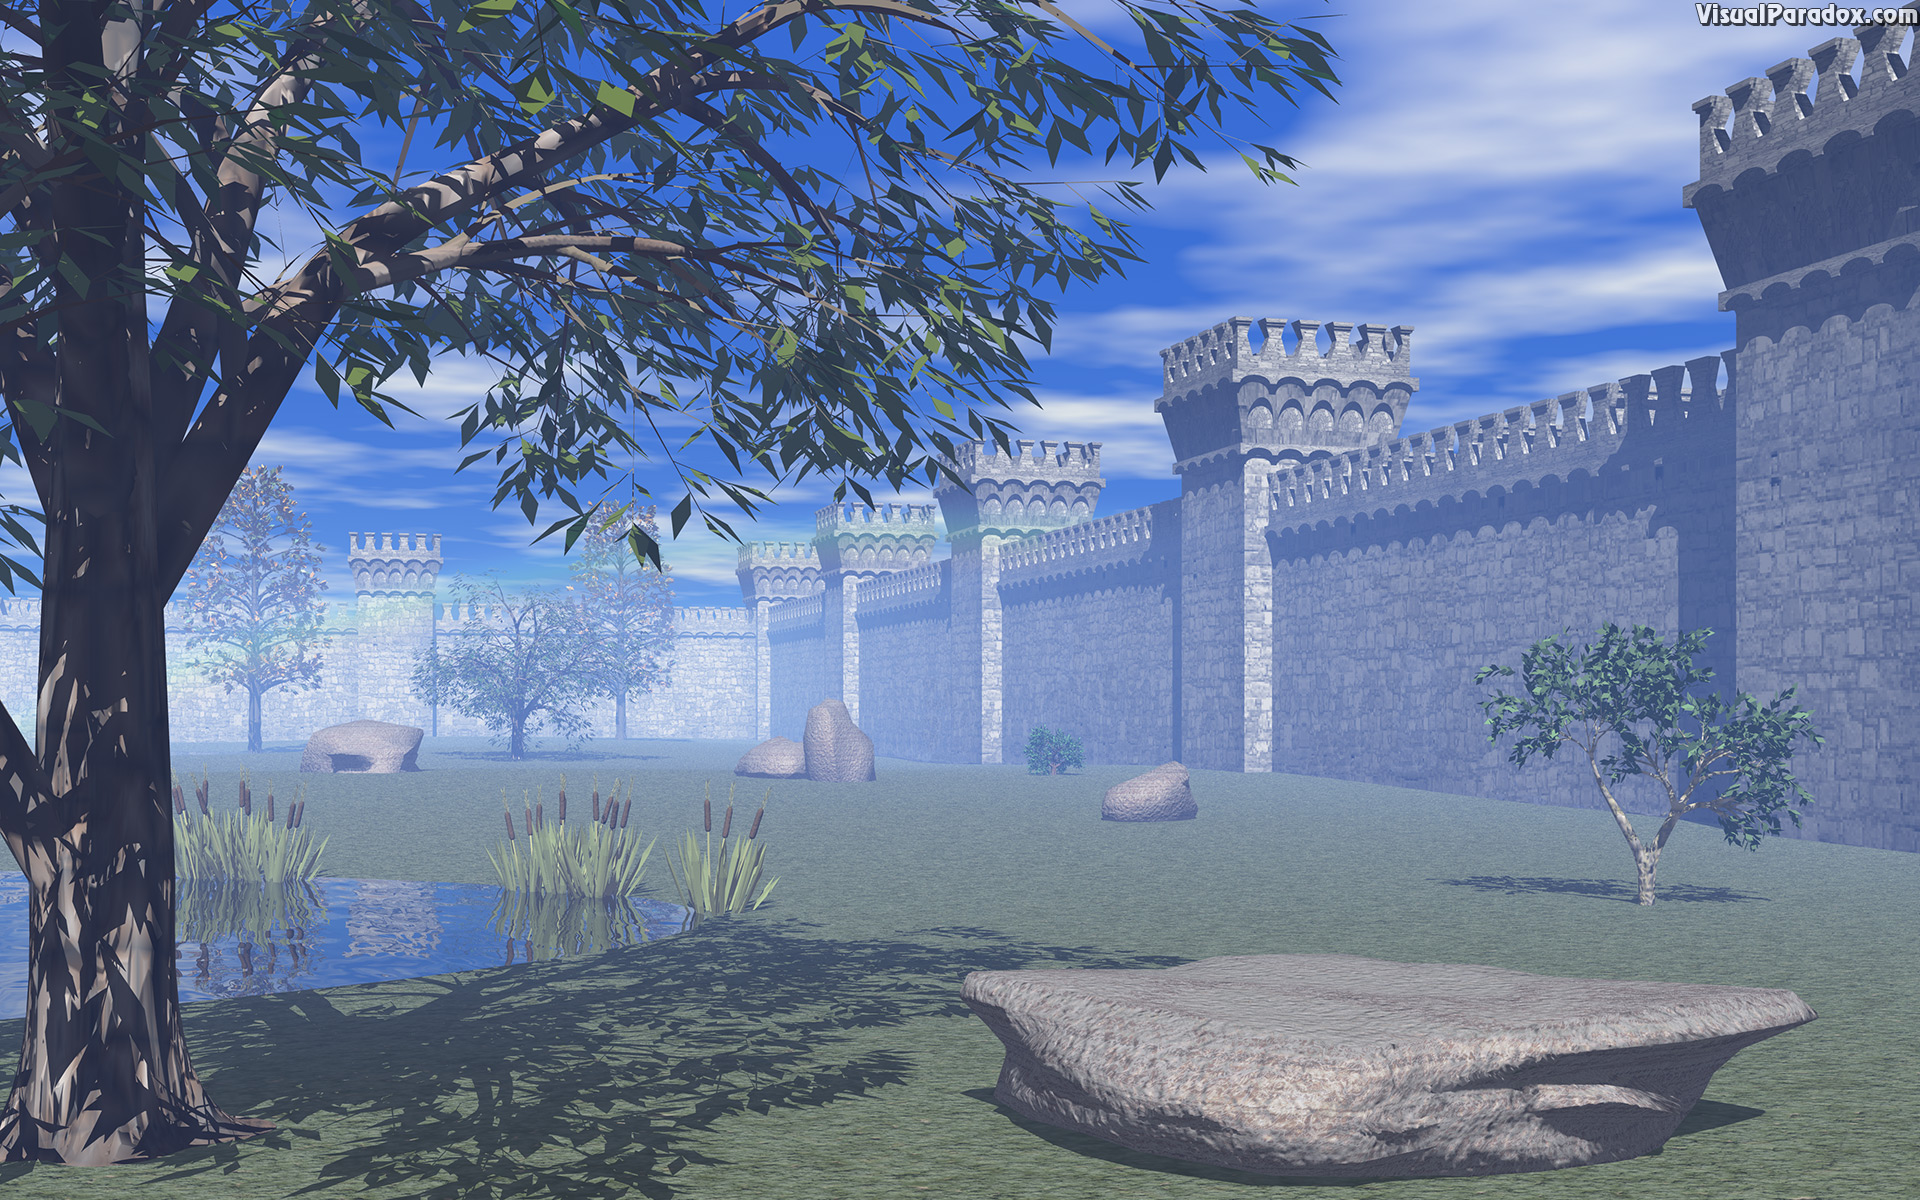 architecture, barrier, blue, building, castle, clouds, court, courtyard, exterior, fortifications, fortress, garden, green, grey, keep, landmark, landscape, medieval, old, park, sky, spring, stone, stones, summer, towers, tree, walls, yard, 3d, wallpaper